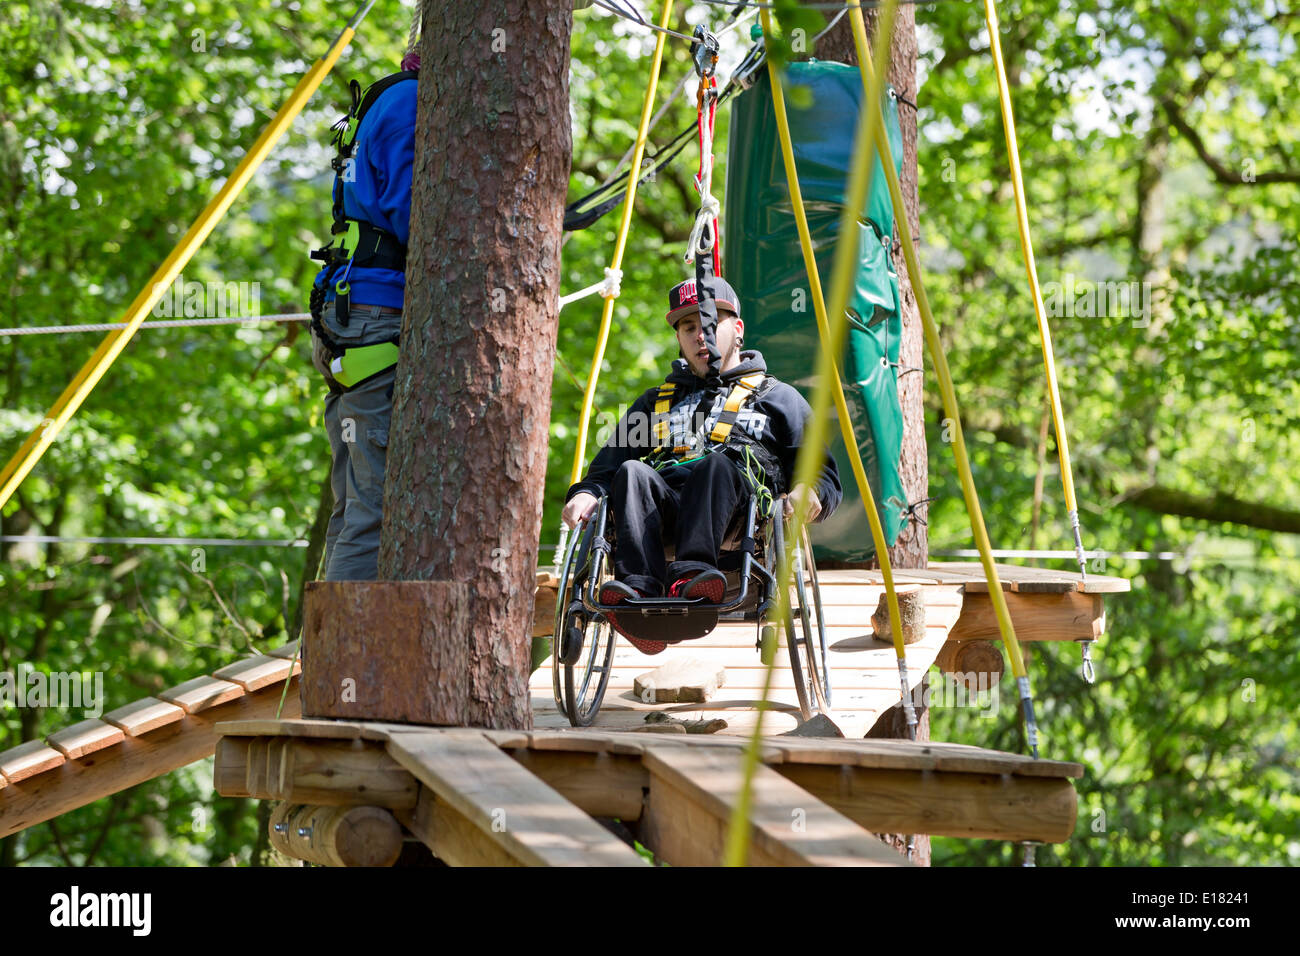 Schwarzenbruck, Germany. 14th May, 2014. Johannes Waltinger rolls over an obstacle in his wheelchair at the forest ropes course (Waldseilpark) in Schwarzenbruck, Germany, 14 May 2014. Two high ropes courses in Germany now offer their experience to persons with disabilities, too. This is made possible by specially trained helpers. Photo: Daniel Karmann/dpa/Alamy Live News - Stock Image